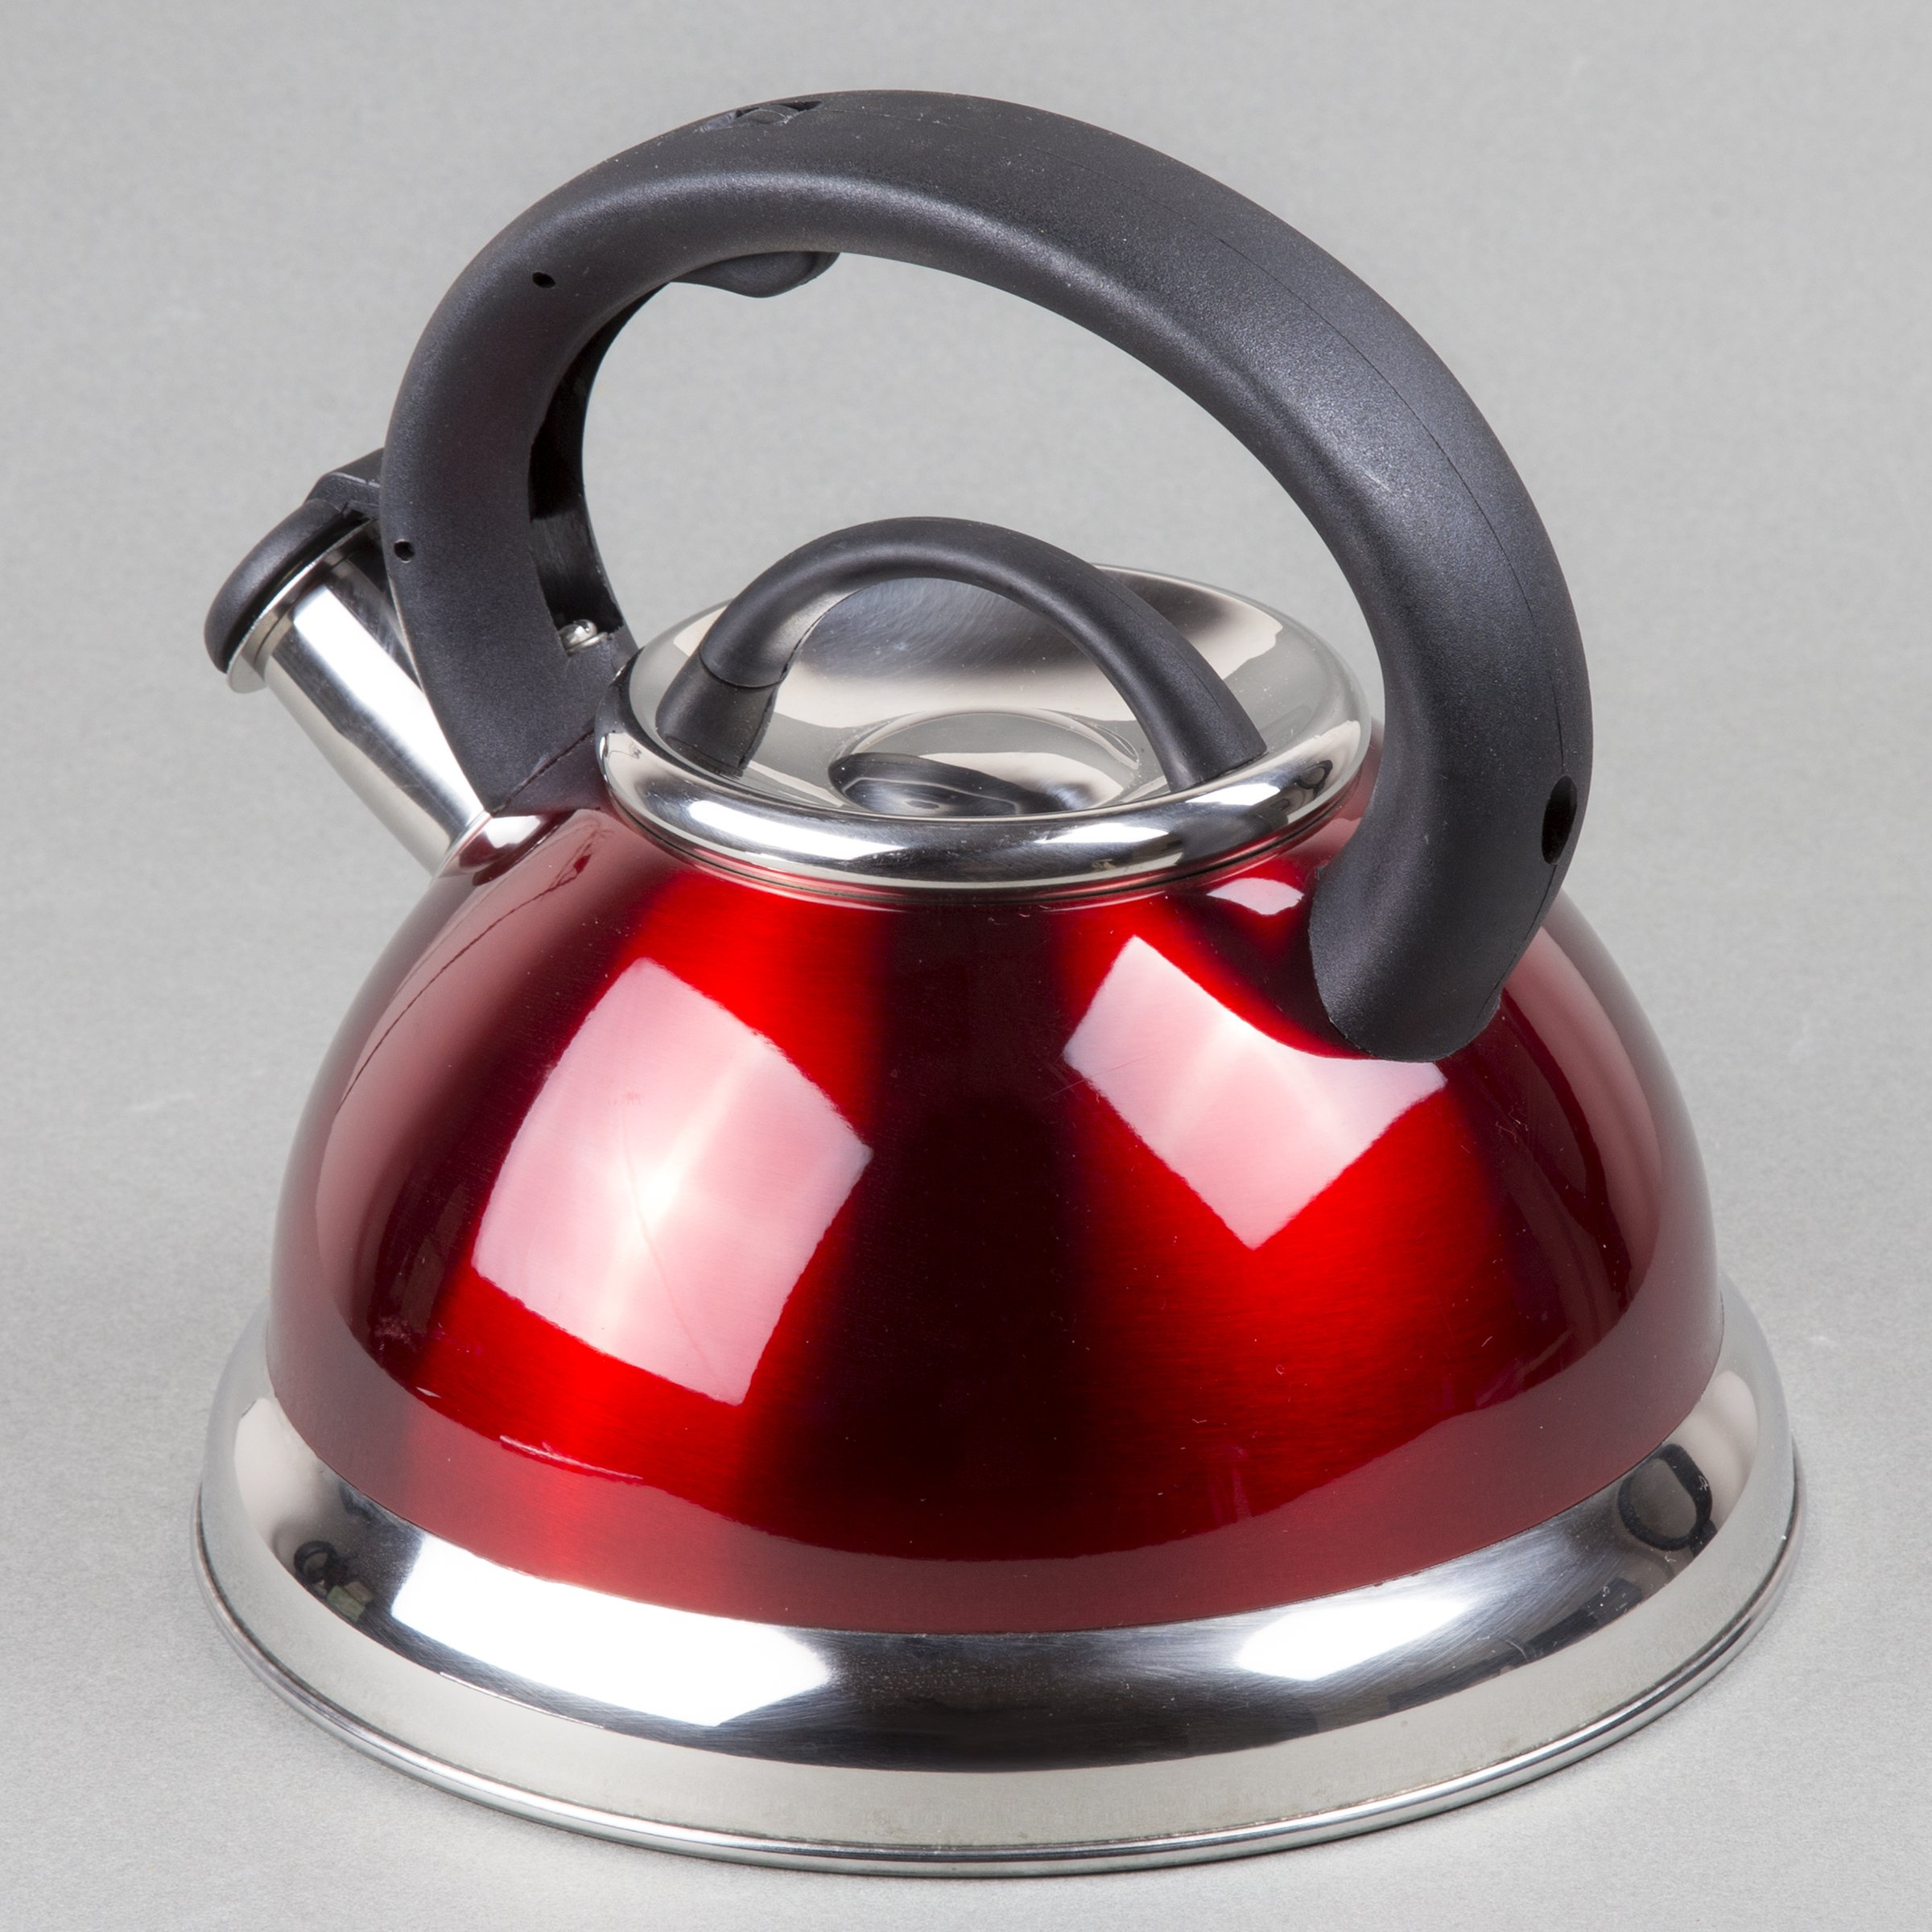 Creative Home Alexa 3.0 Whistling Tea Kettle, Cranberry by Creative Home (Image #6)